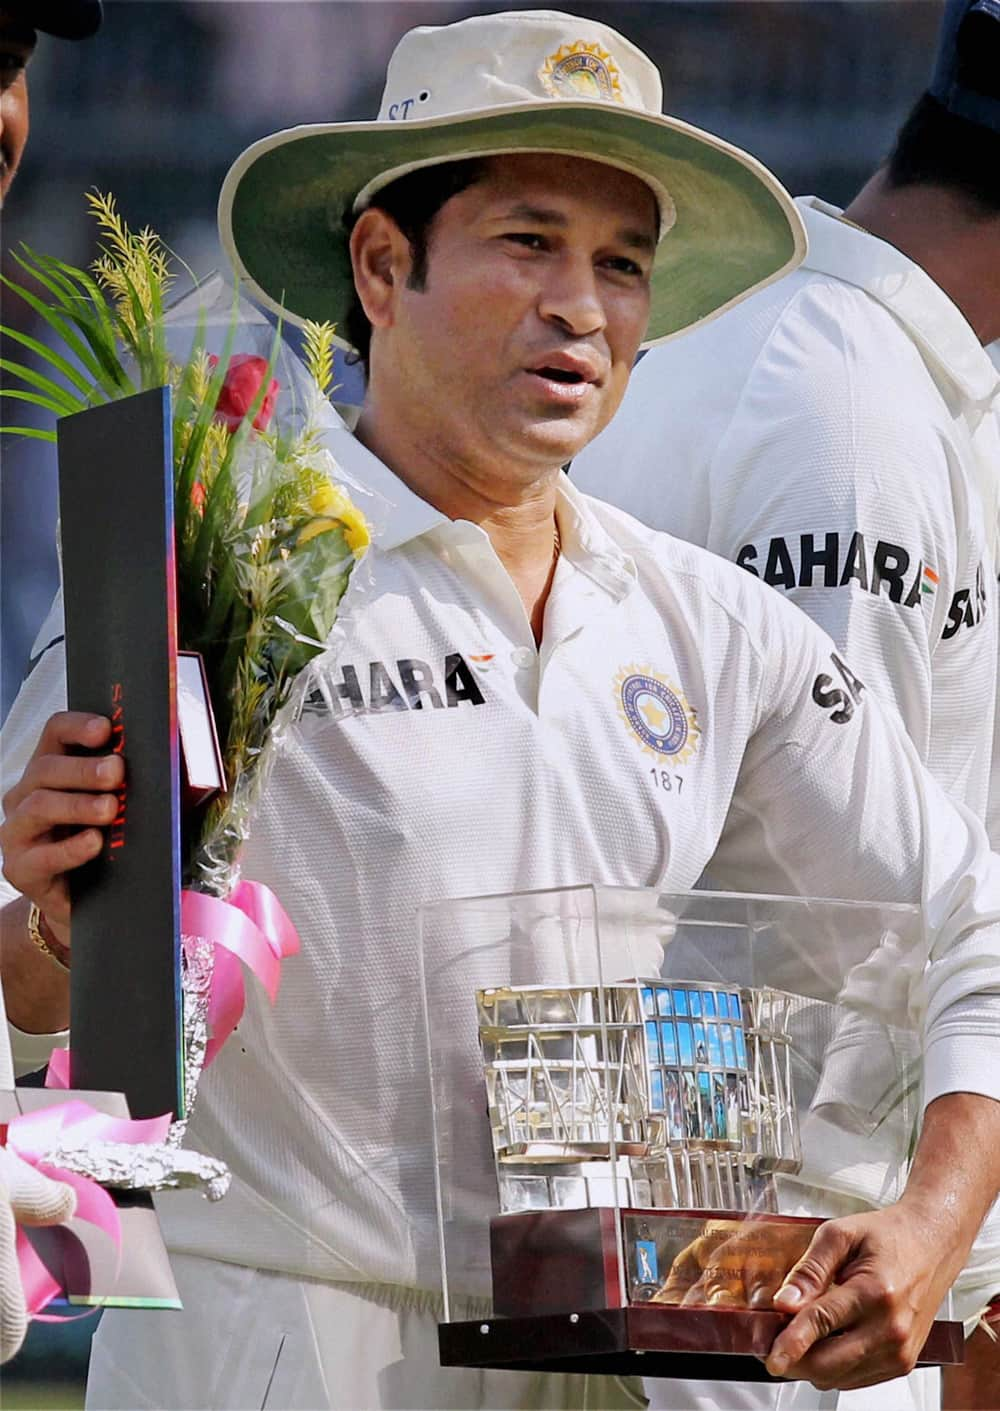 Sachin Tendulkar after being felicitated by Cricket Association of Bengal on his 199th test match againist West Indies at Eden Garden in Kolkata.